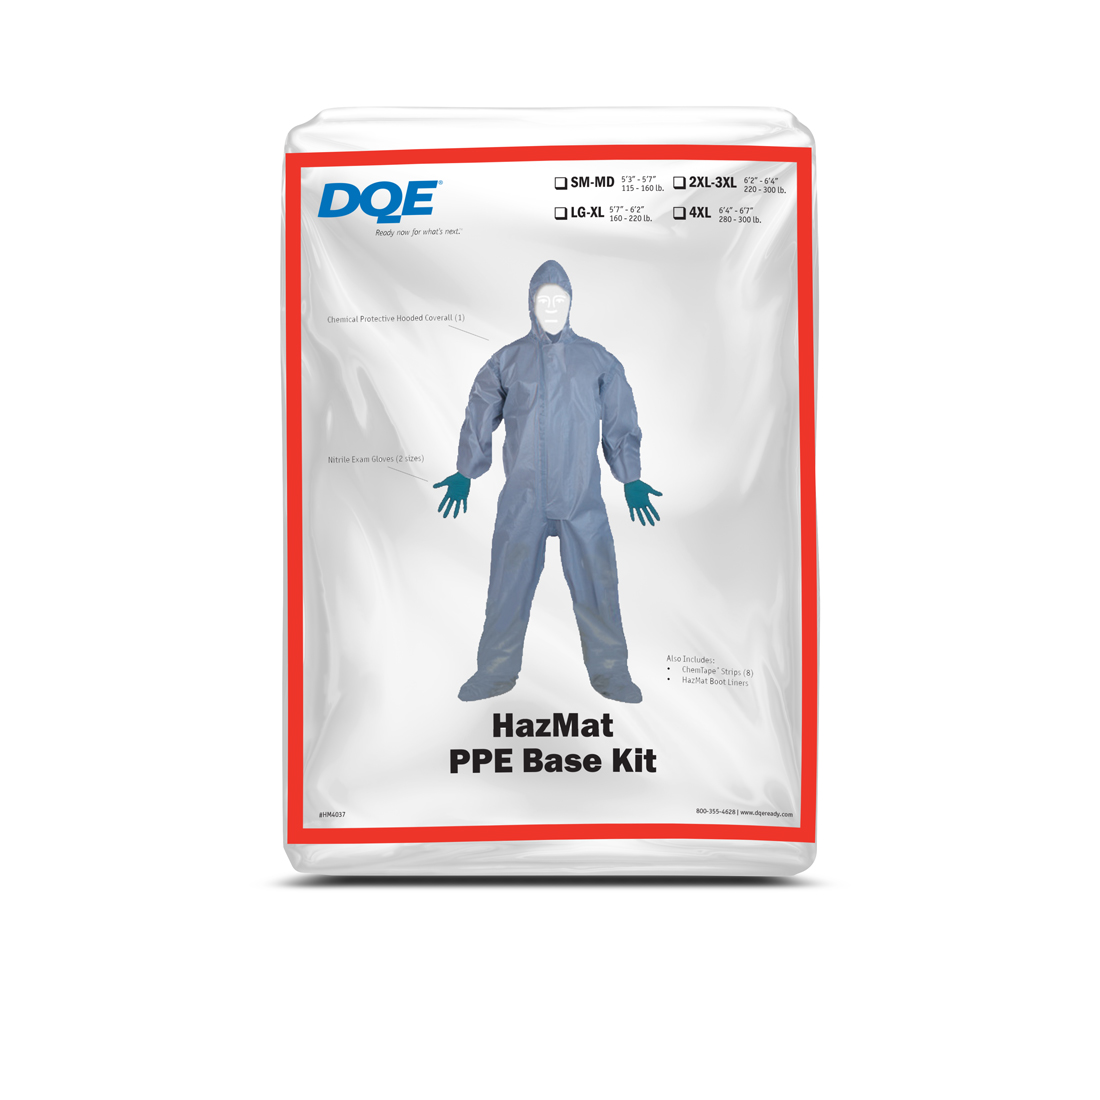 HazMat PPE Base Kit Package image